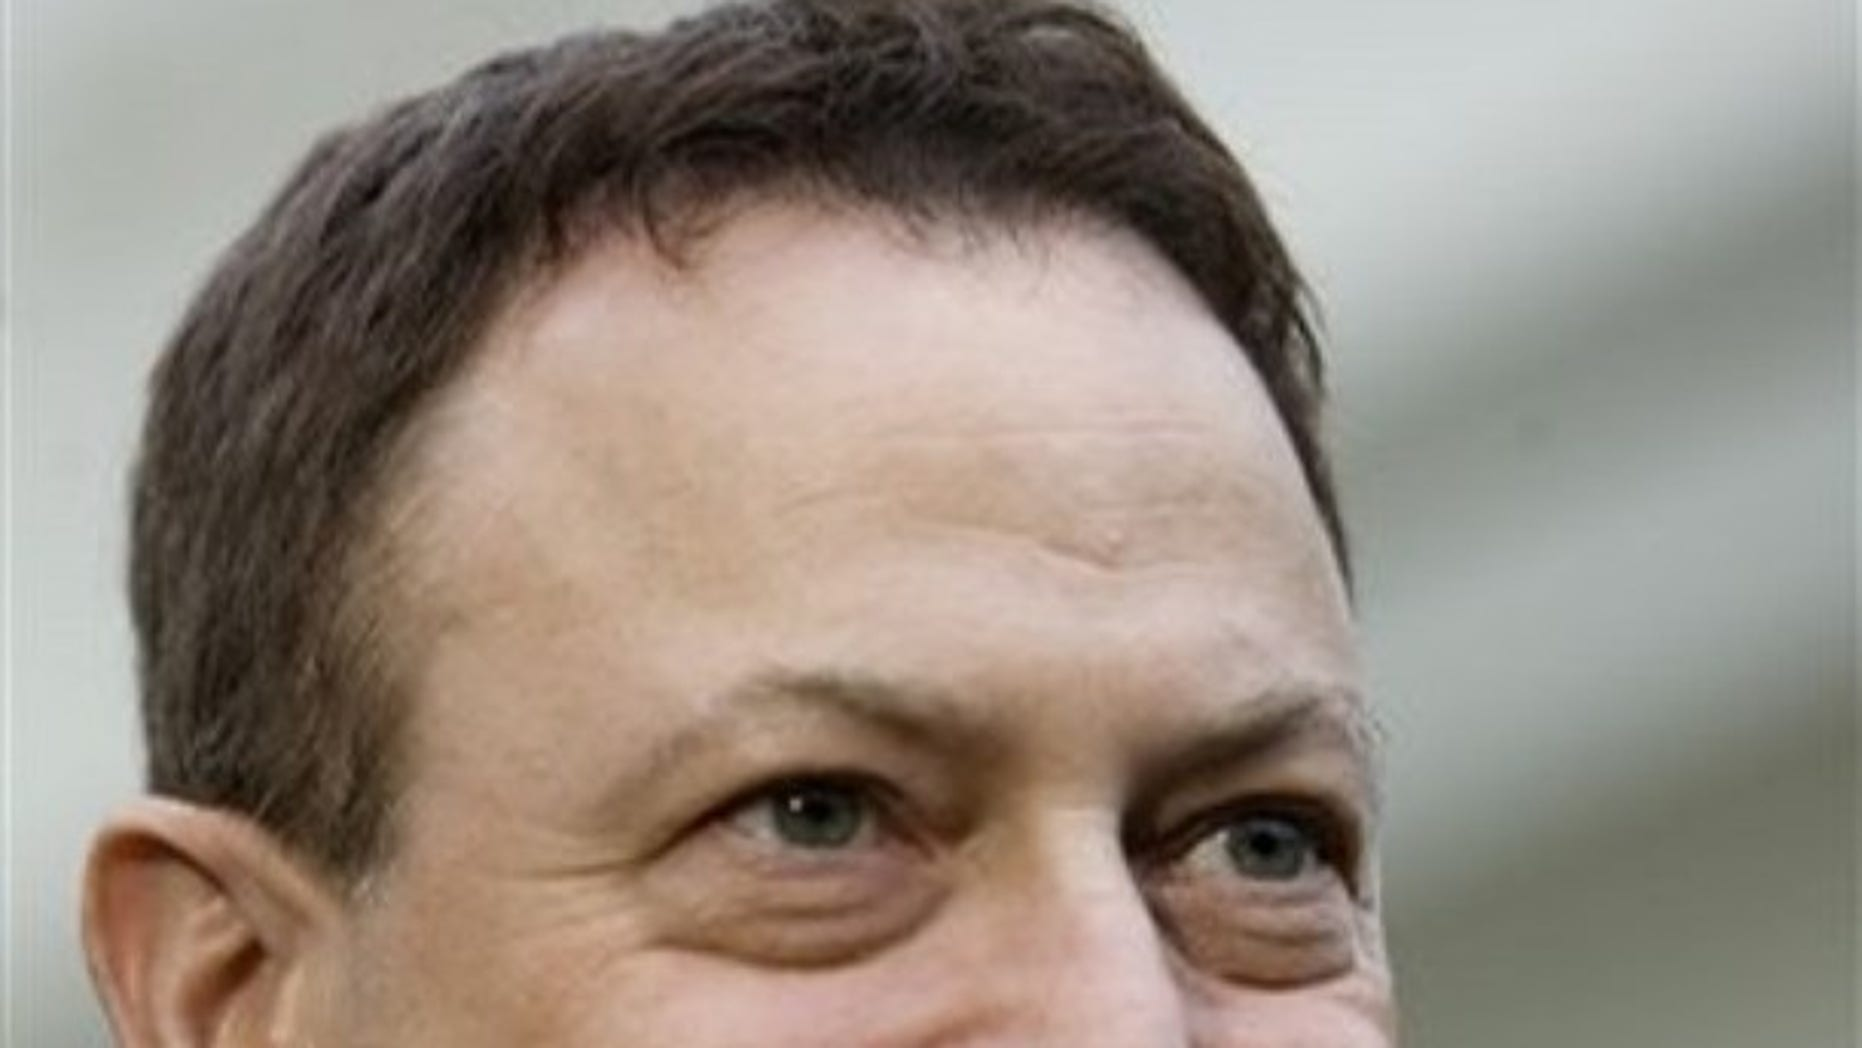 Actor Gary Sinise, a recipient of the 2008 Presidential Citizens Medal, speaks with members of the press, Wednesday, Dec. 10, 2008, outside the White House in Washington. (AP Photo/Haraz N. Ghanbari)